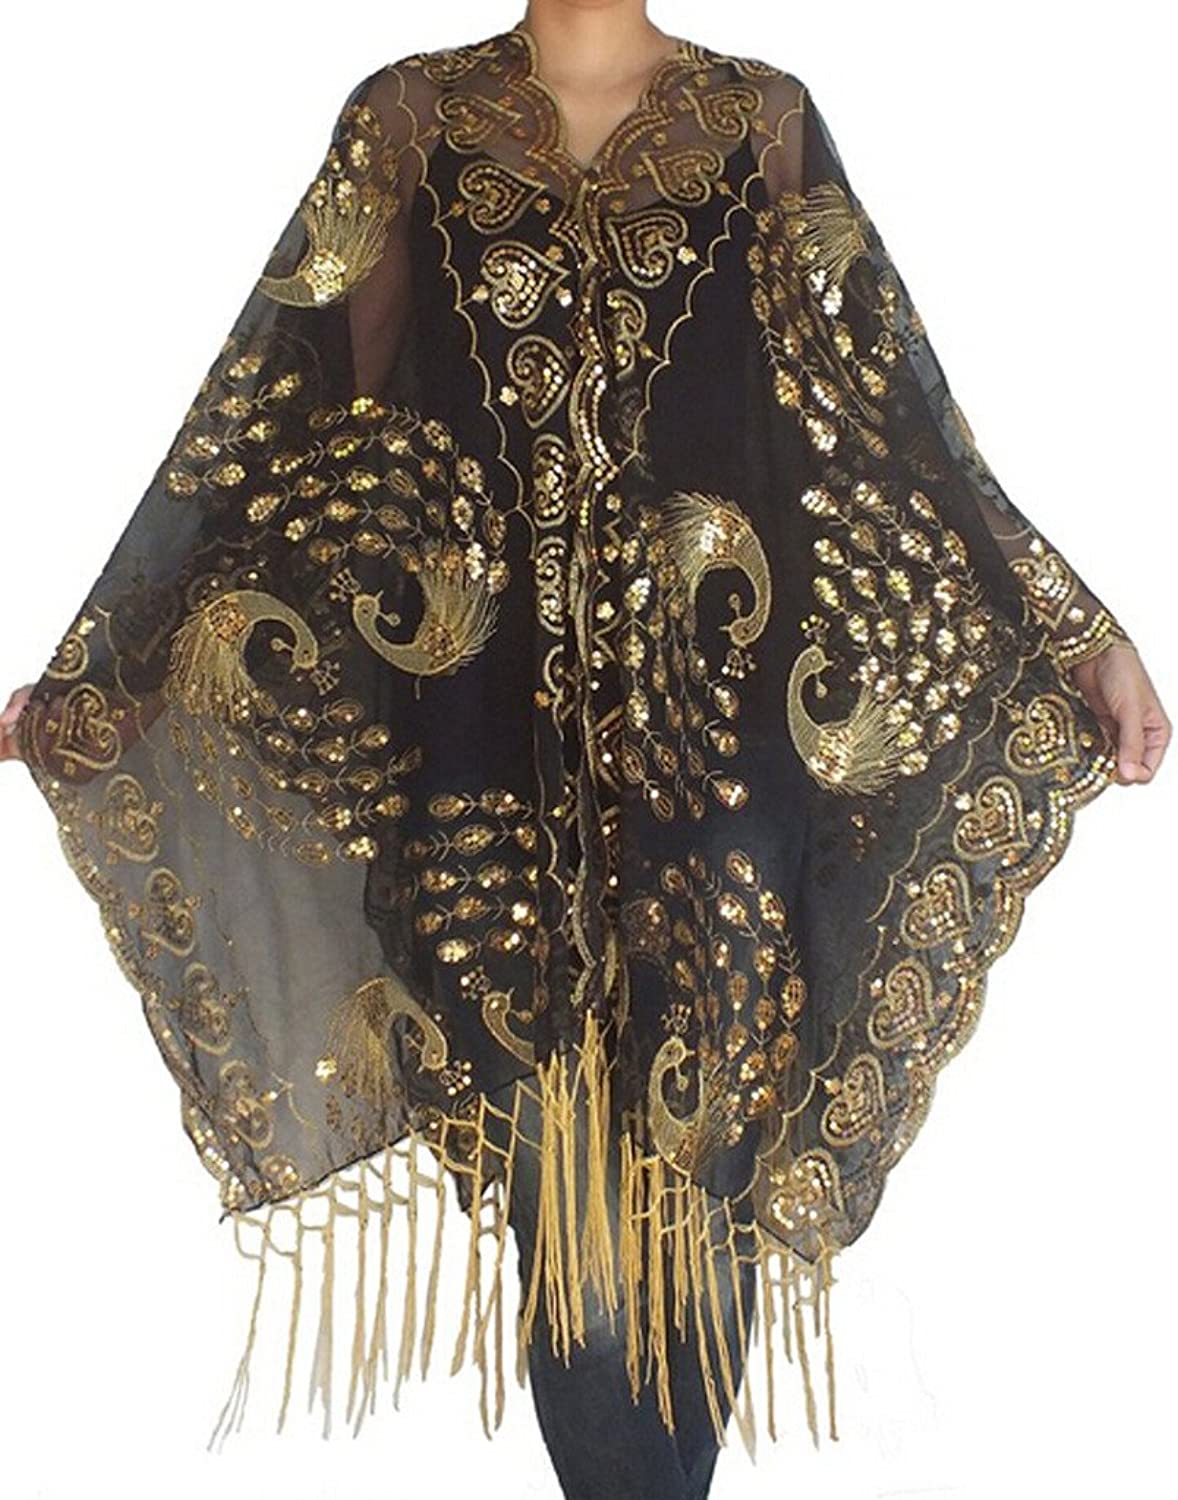 Flapper Costumes, Flapper Girl Costume  Peacock Phoenix Embroidery Sequins Wedding Scarf Shawls $19.99 AT vintagedancer.com